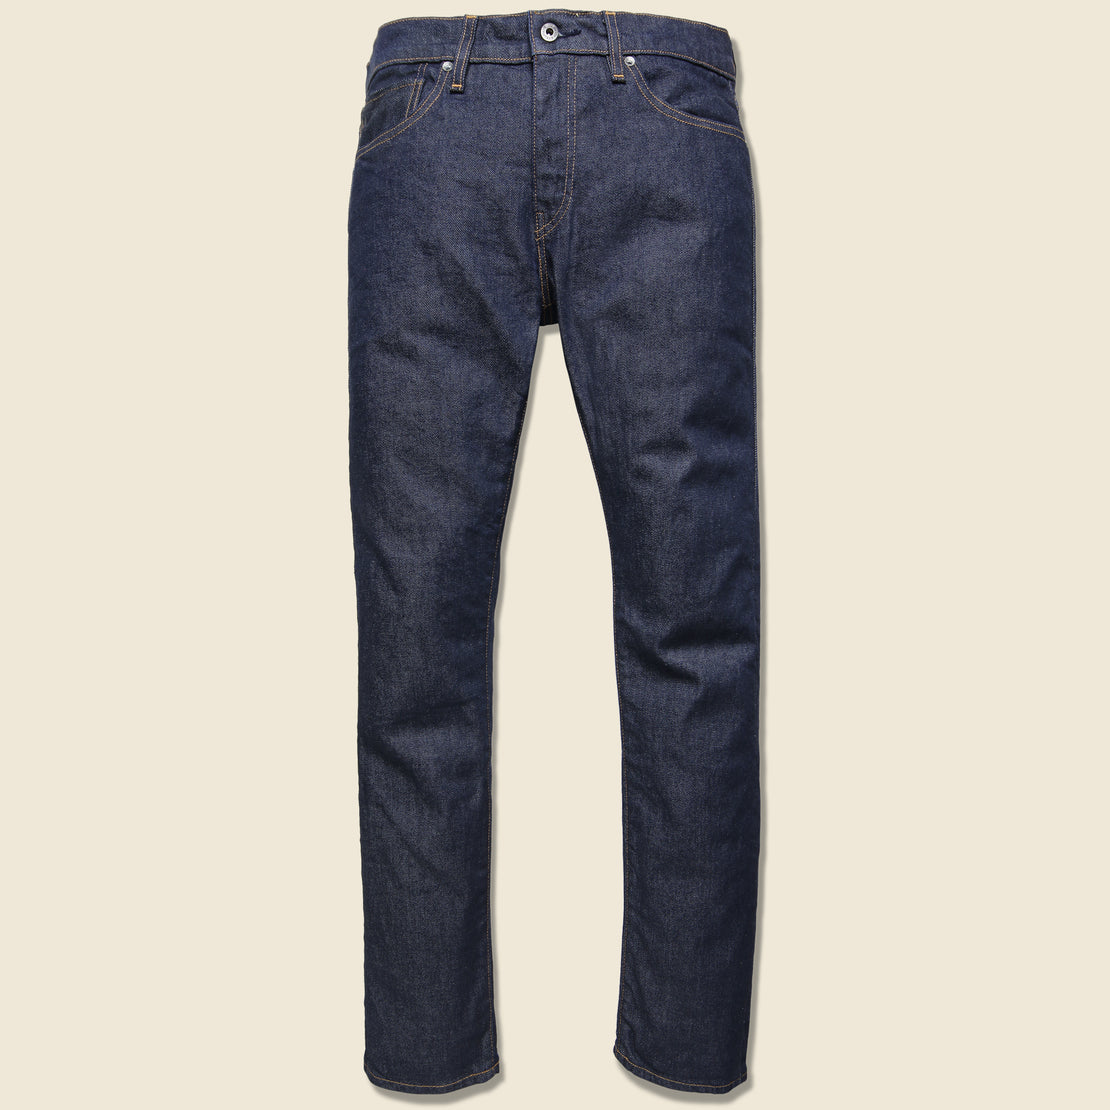 Levis Made & Crafted 511 Slim Fit Jean - Resin Rinse